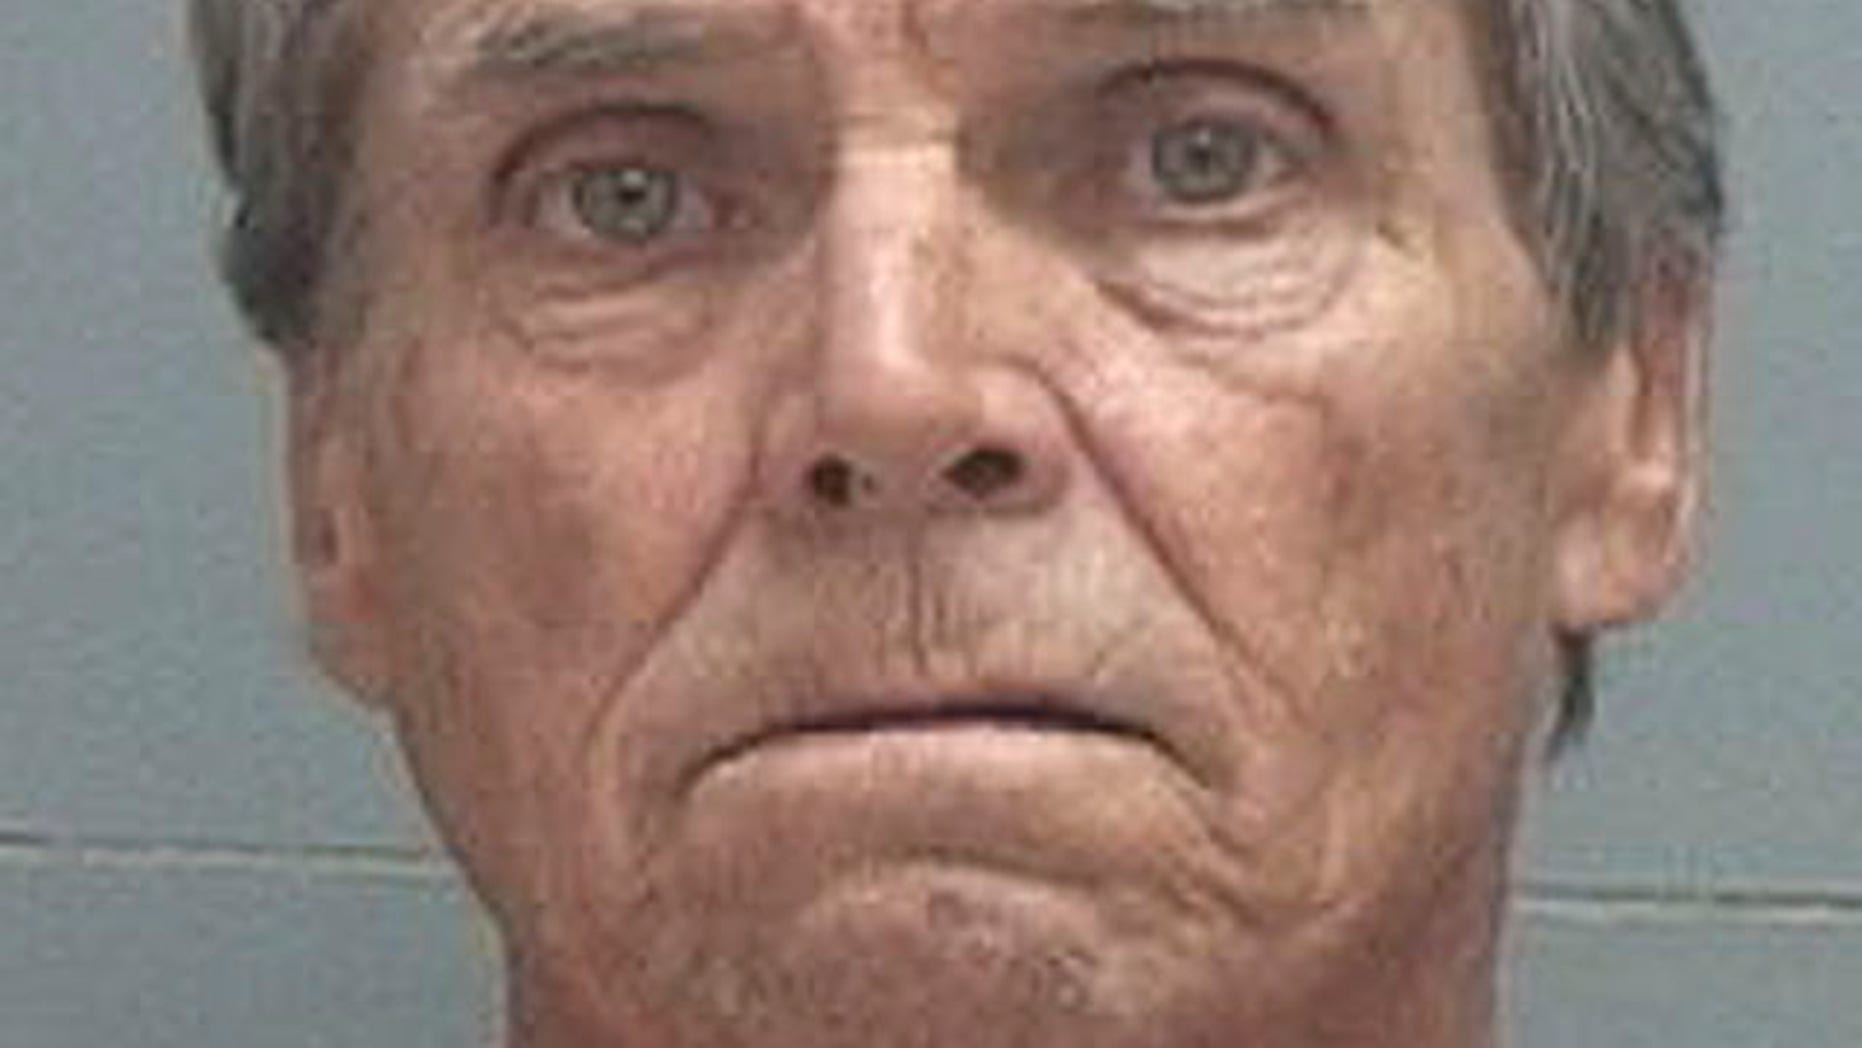 This image provided by the Salt Lake County Sheriffâs Office shows Hans Loudermilk.